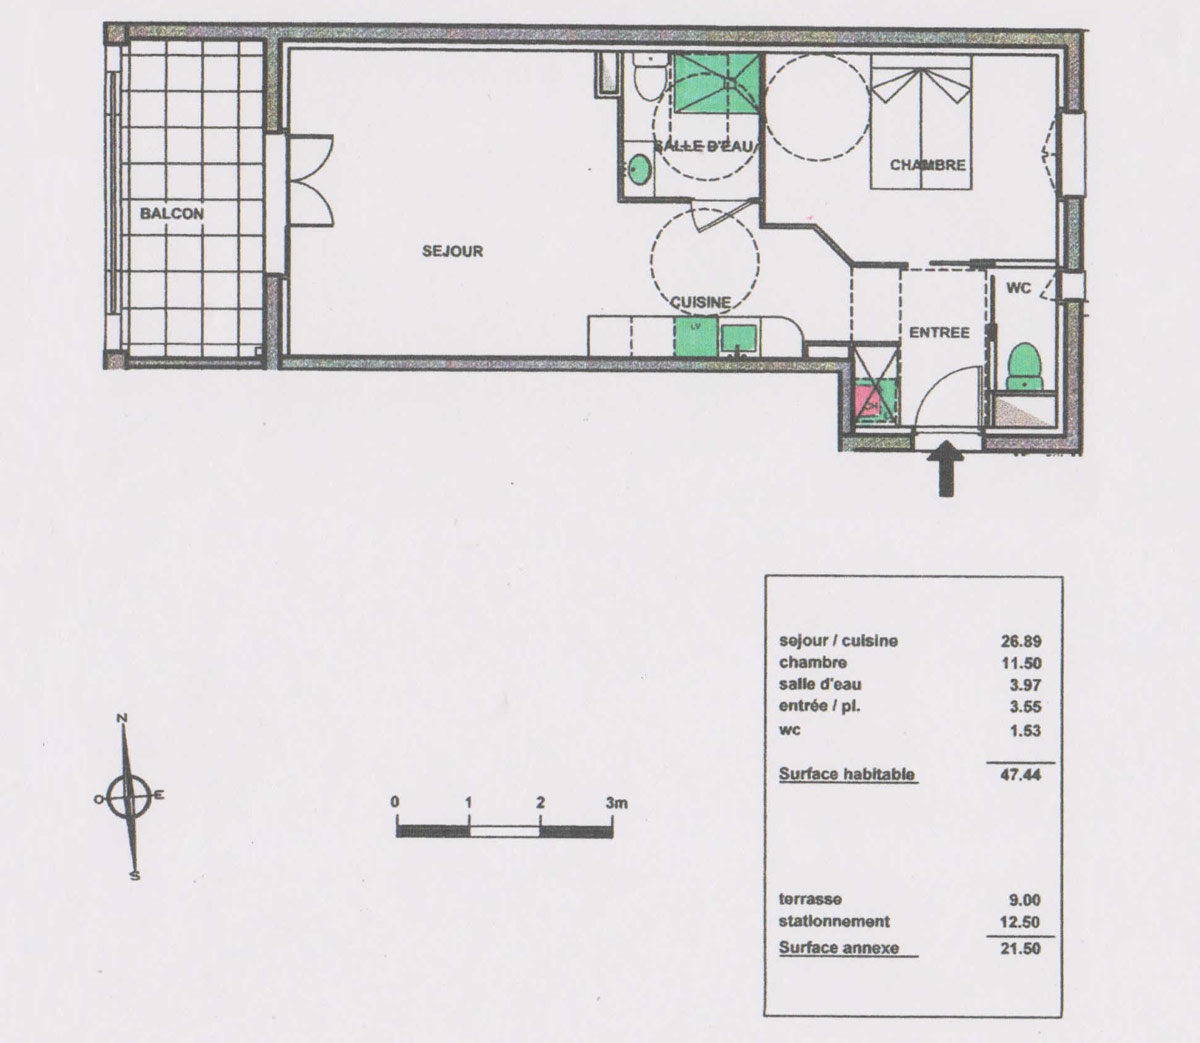 Appartement - Palombaggia T2